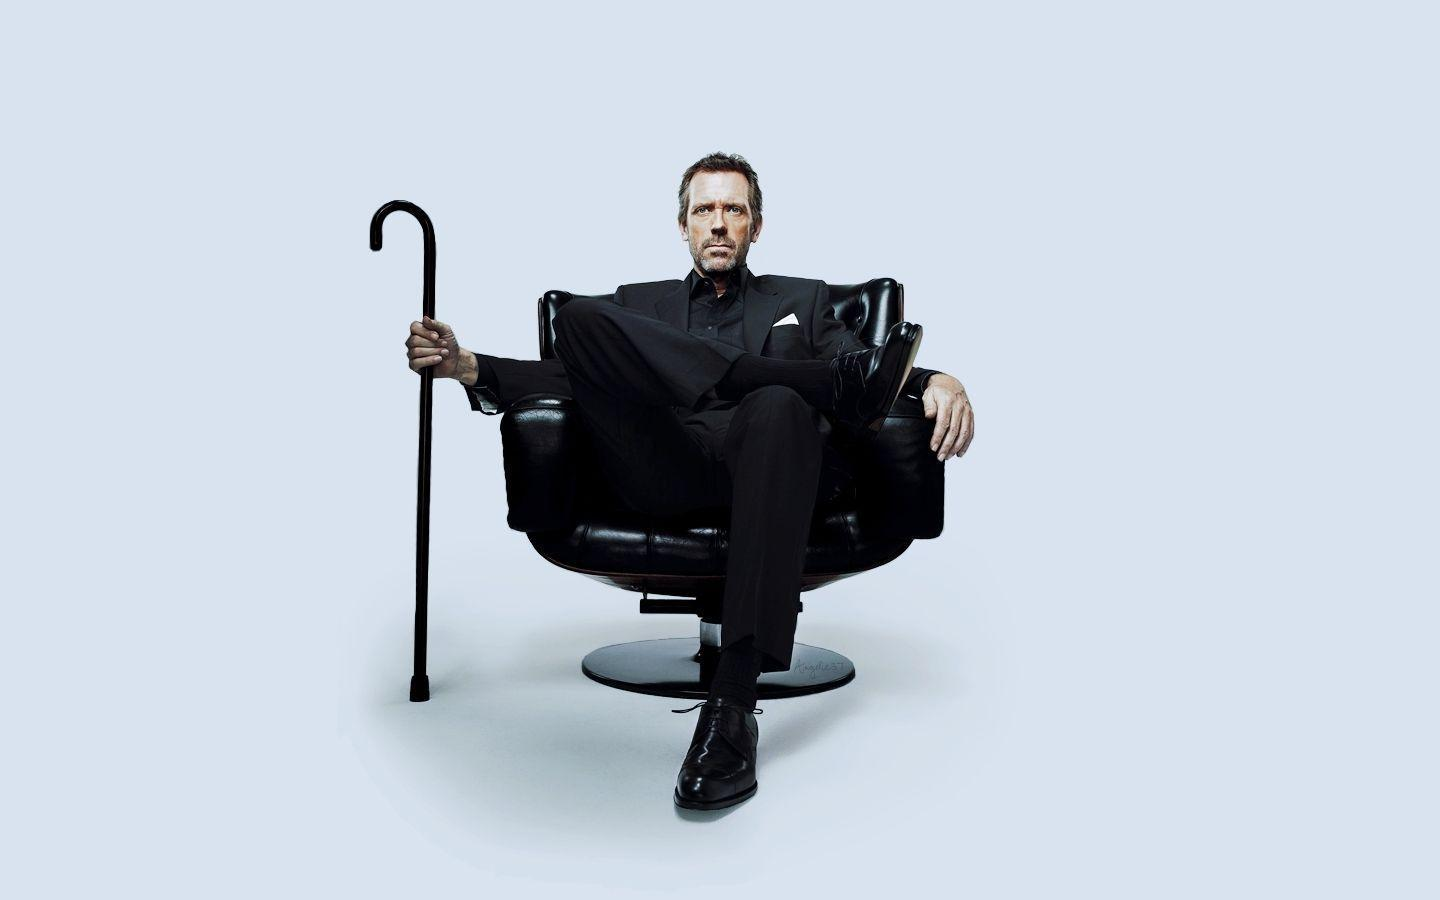 House MD Season 7 Promo wallpaper - House M.D. Wallpaper (15185928 ...